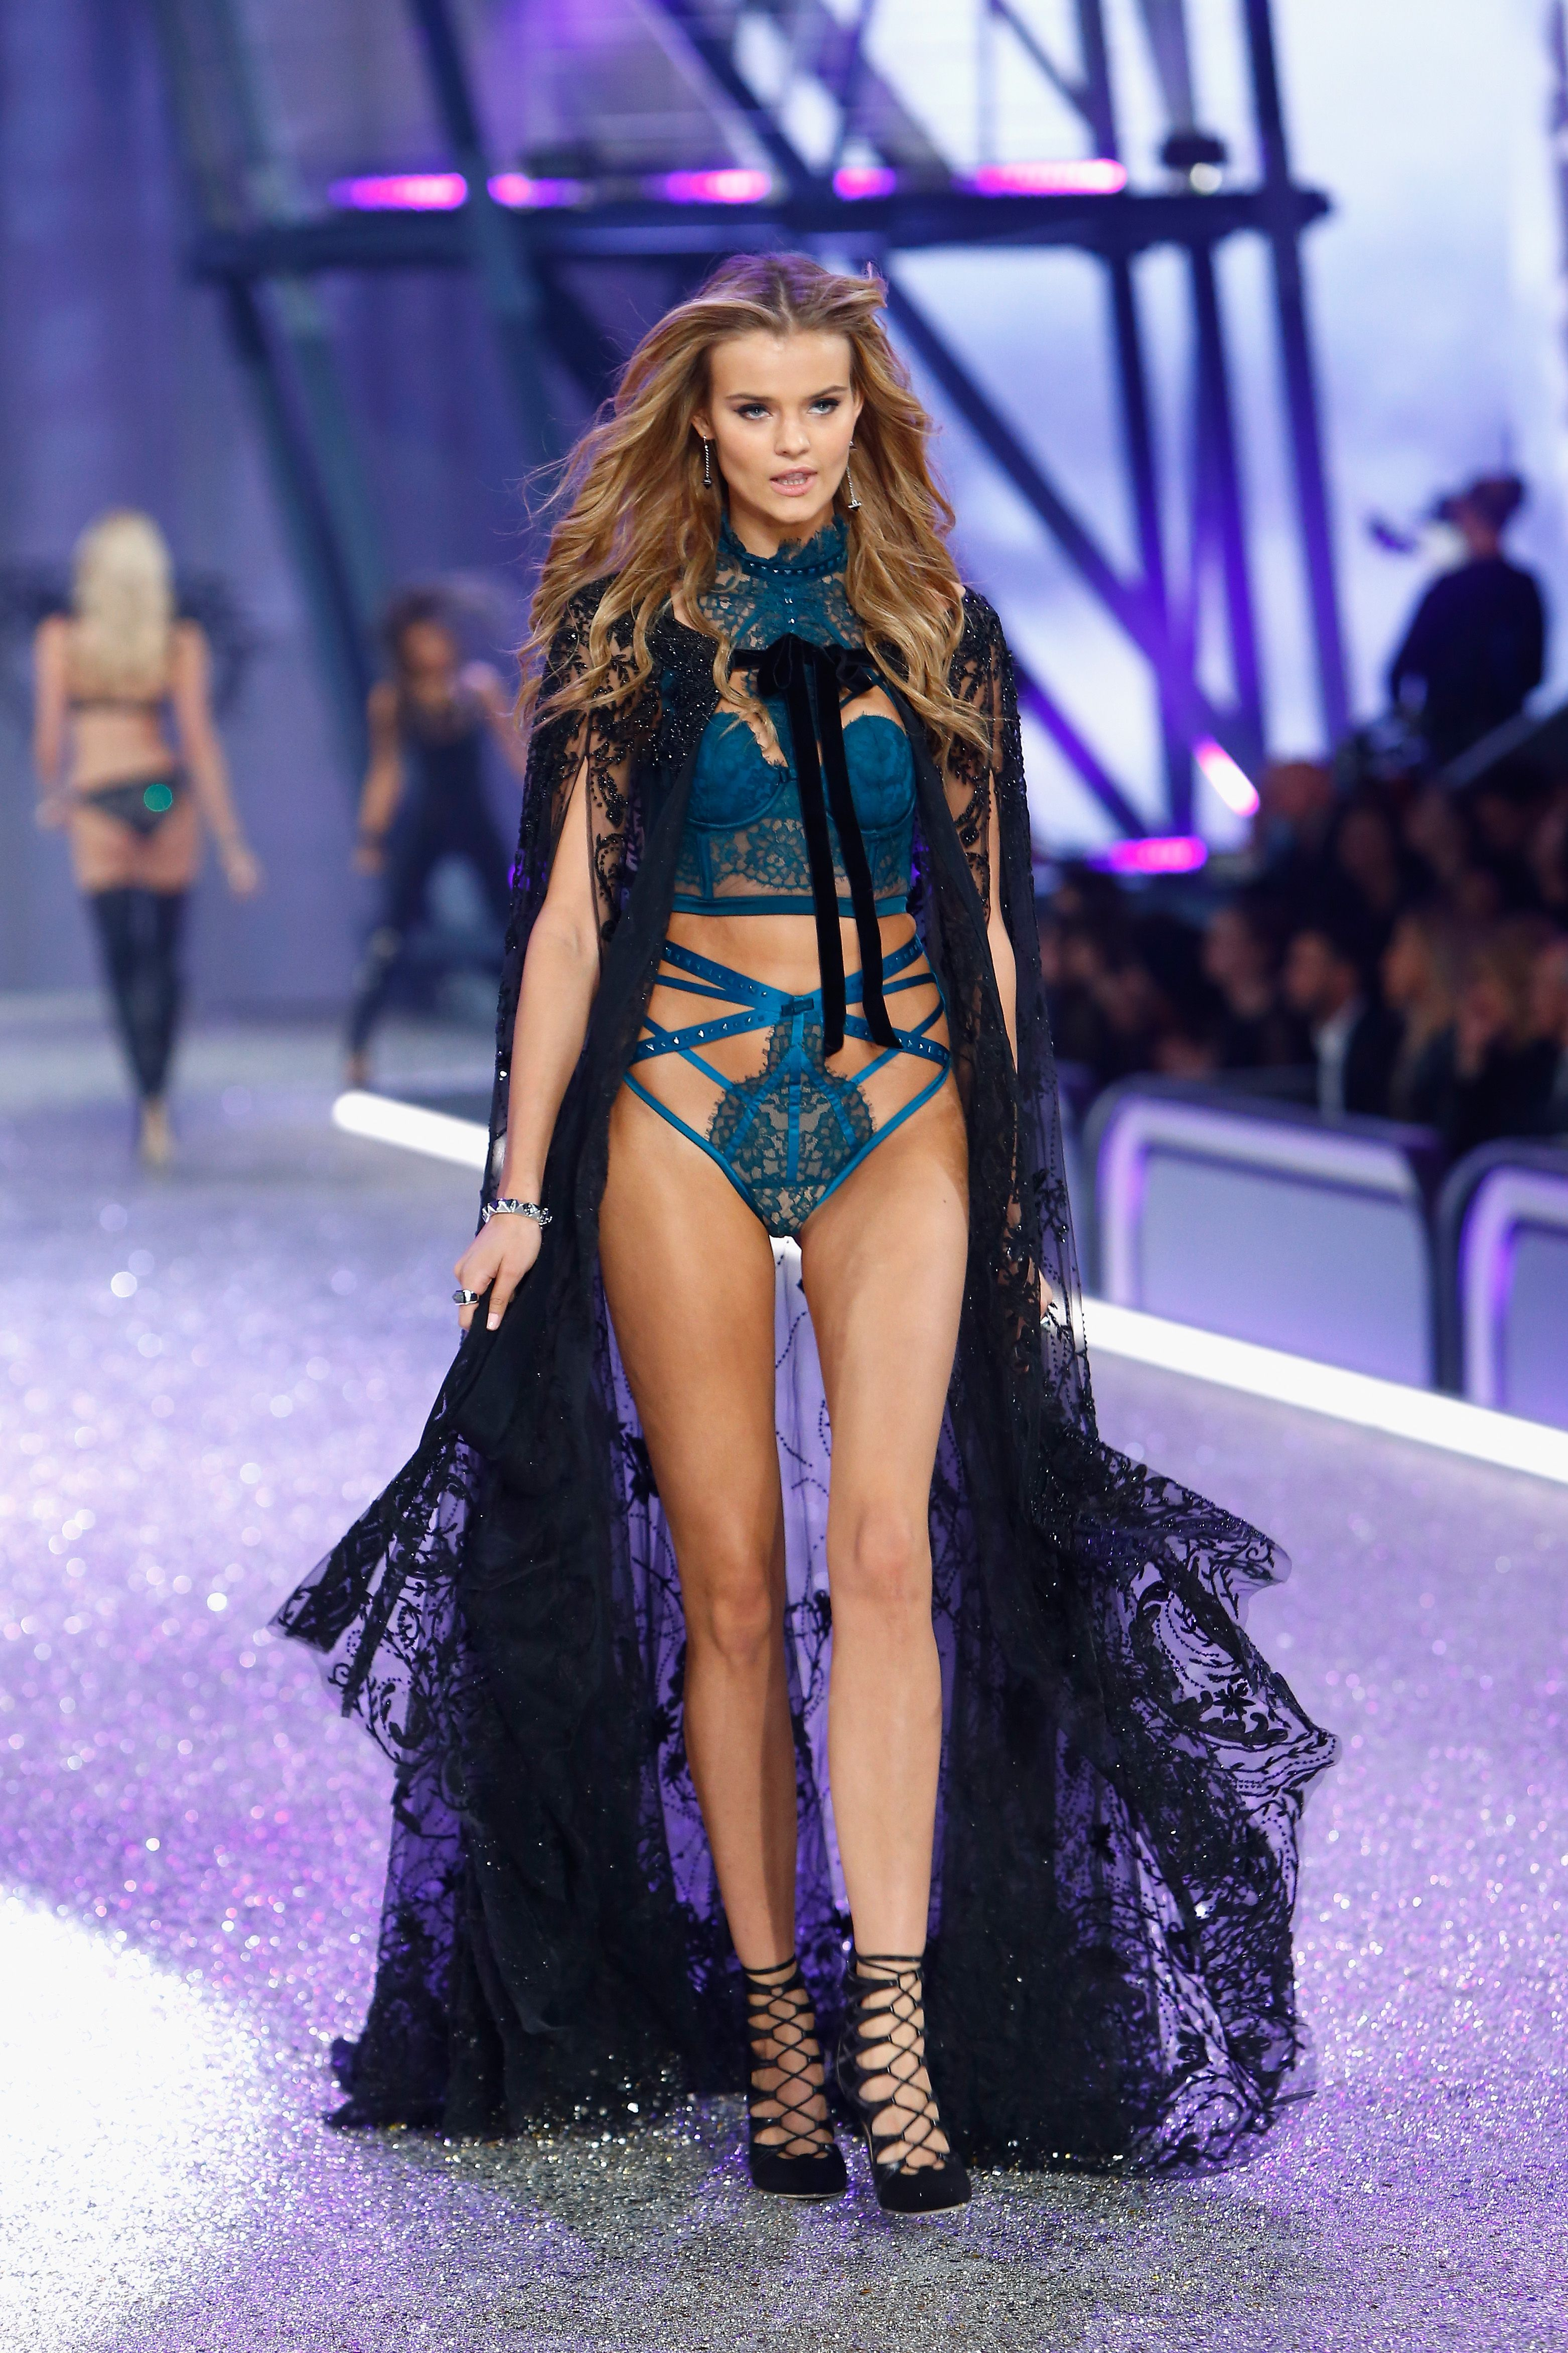 67770ab9c8 Secret Angel  Model Kate Grigorieva in Victoria s Secret Designer  Collection strappy balconet and matching high